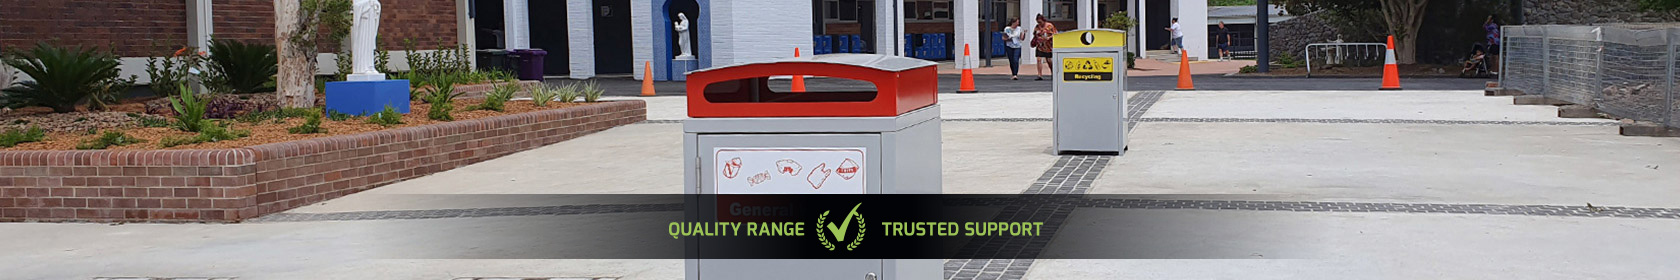 AS Urban Street Furniture Monthly Product Specials